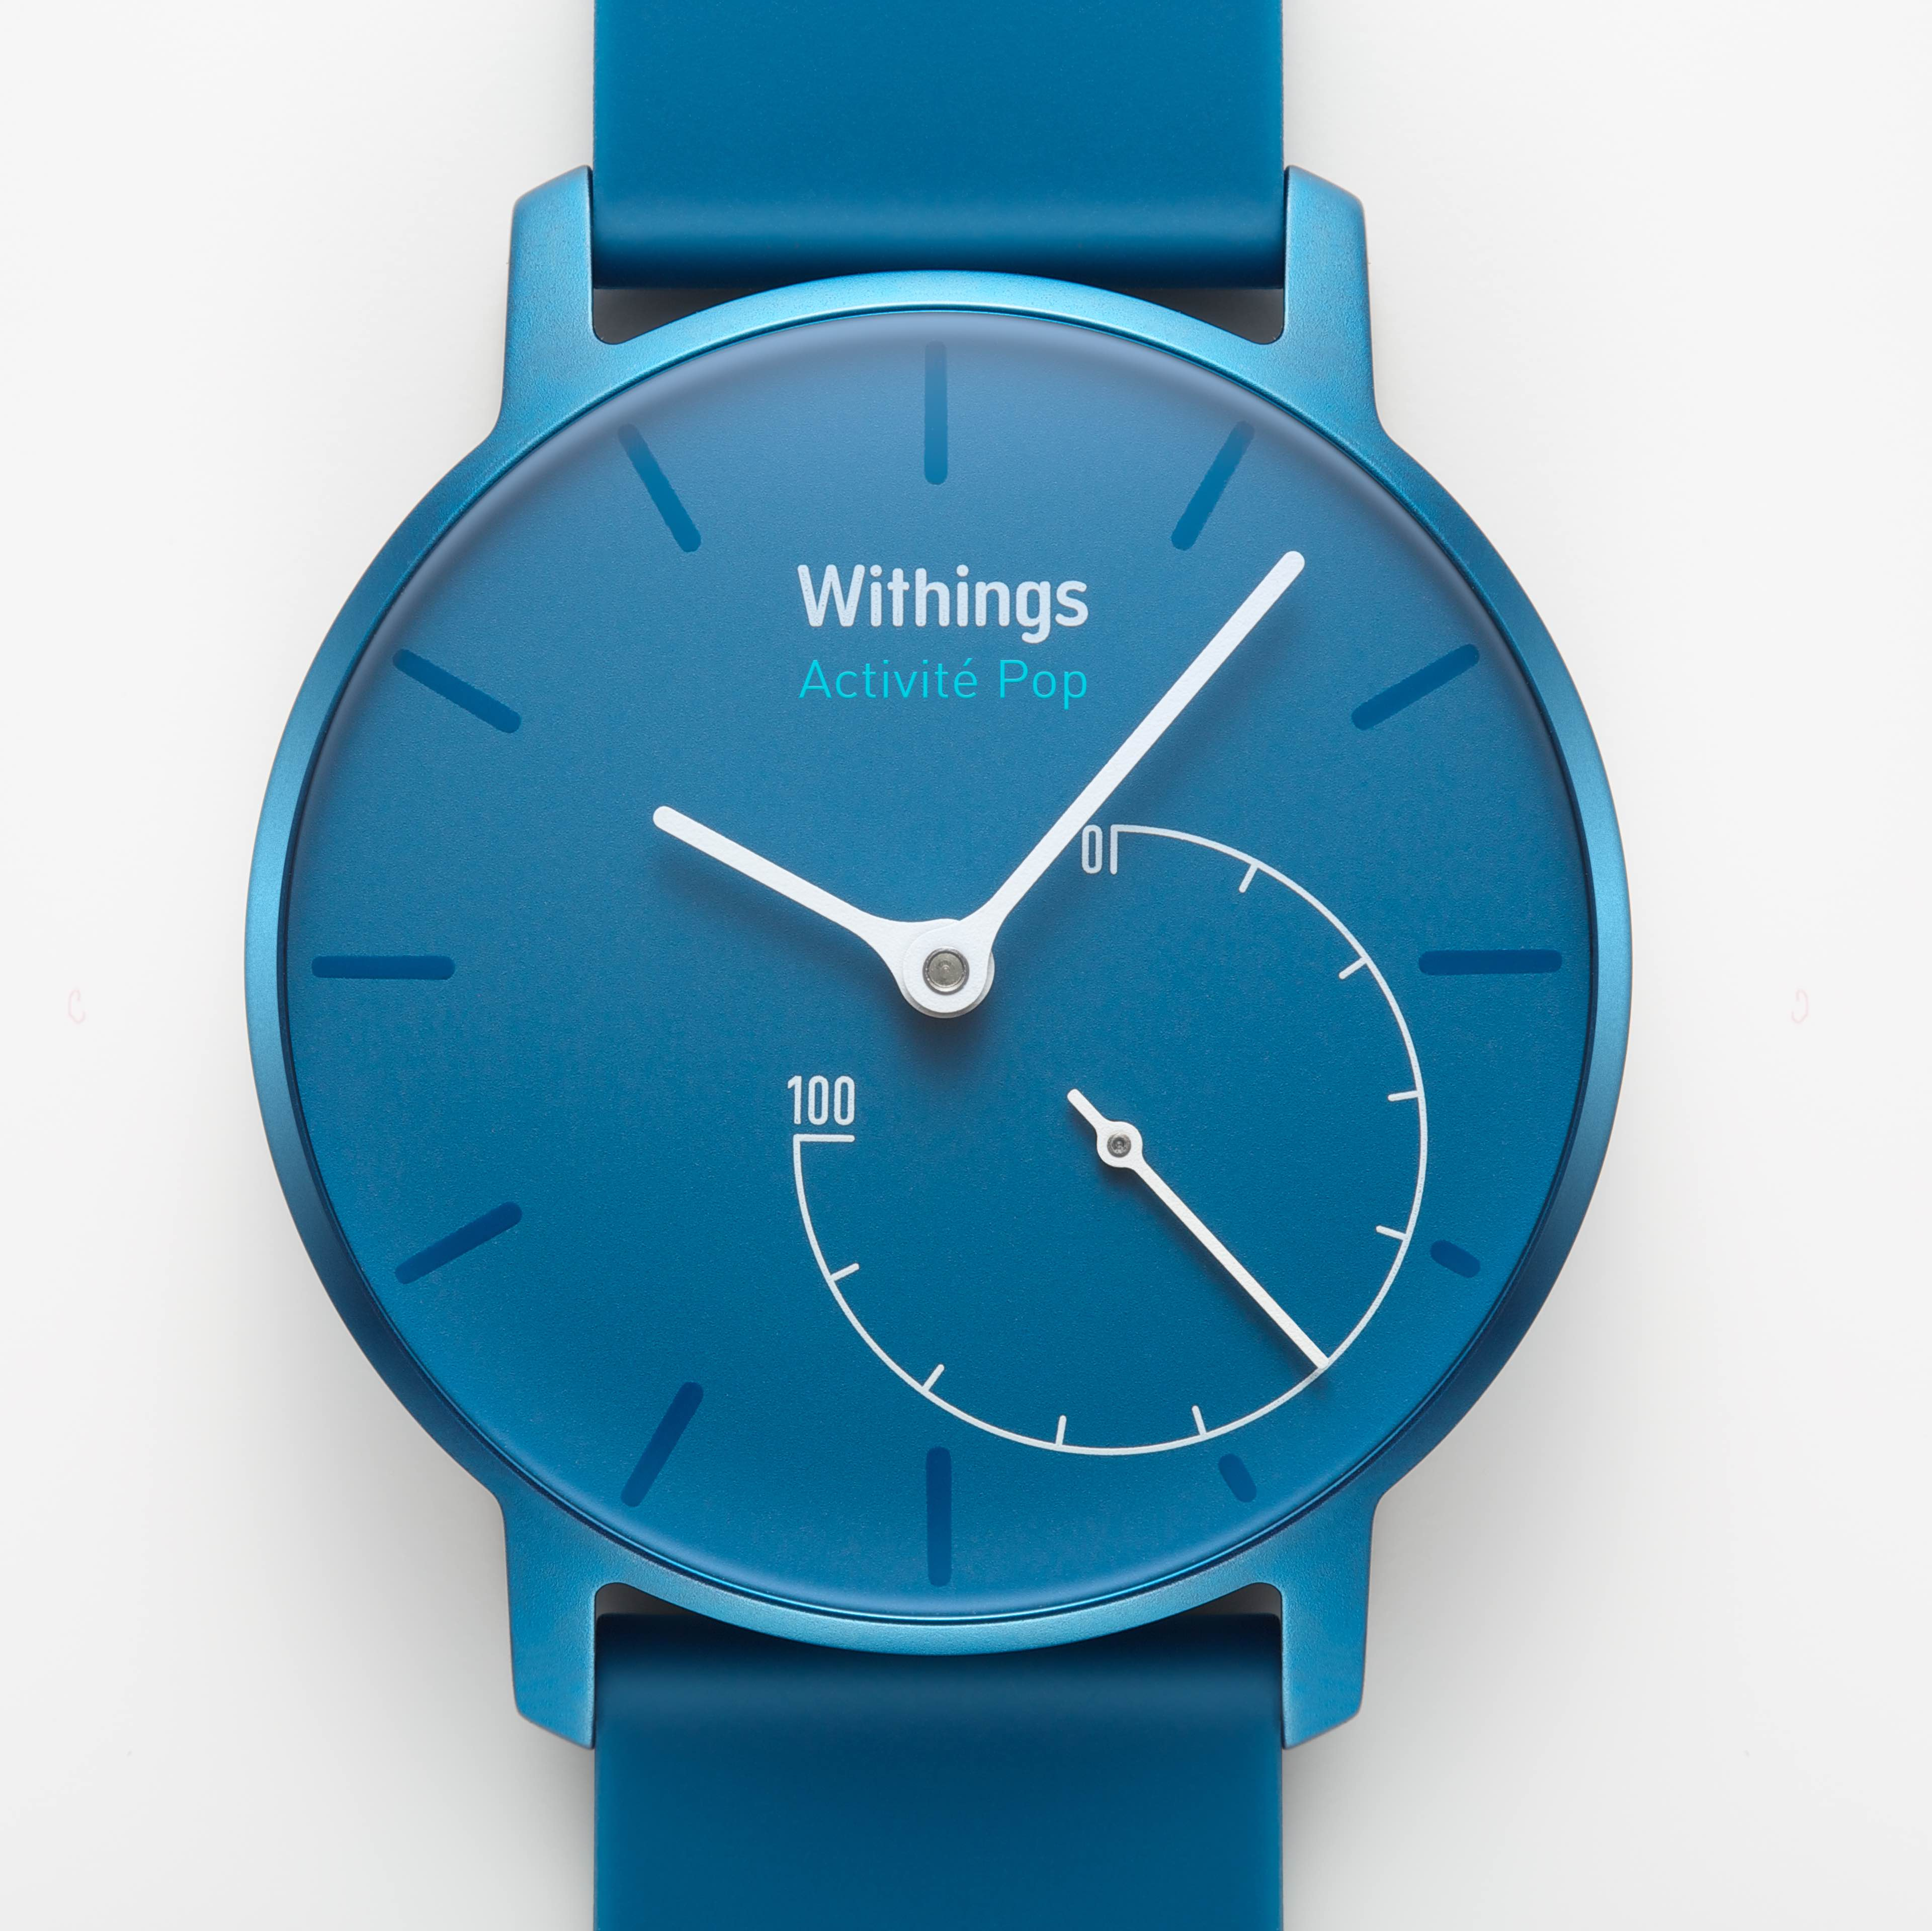 Withings Activite Pop image 001